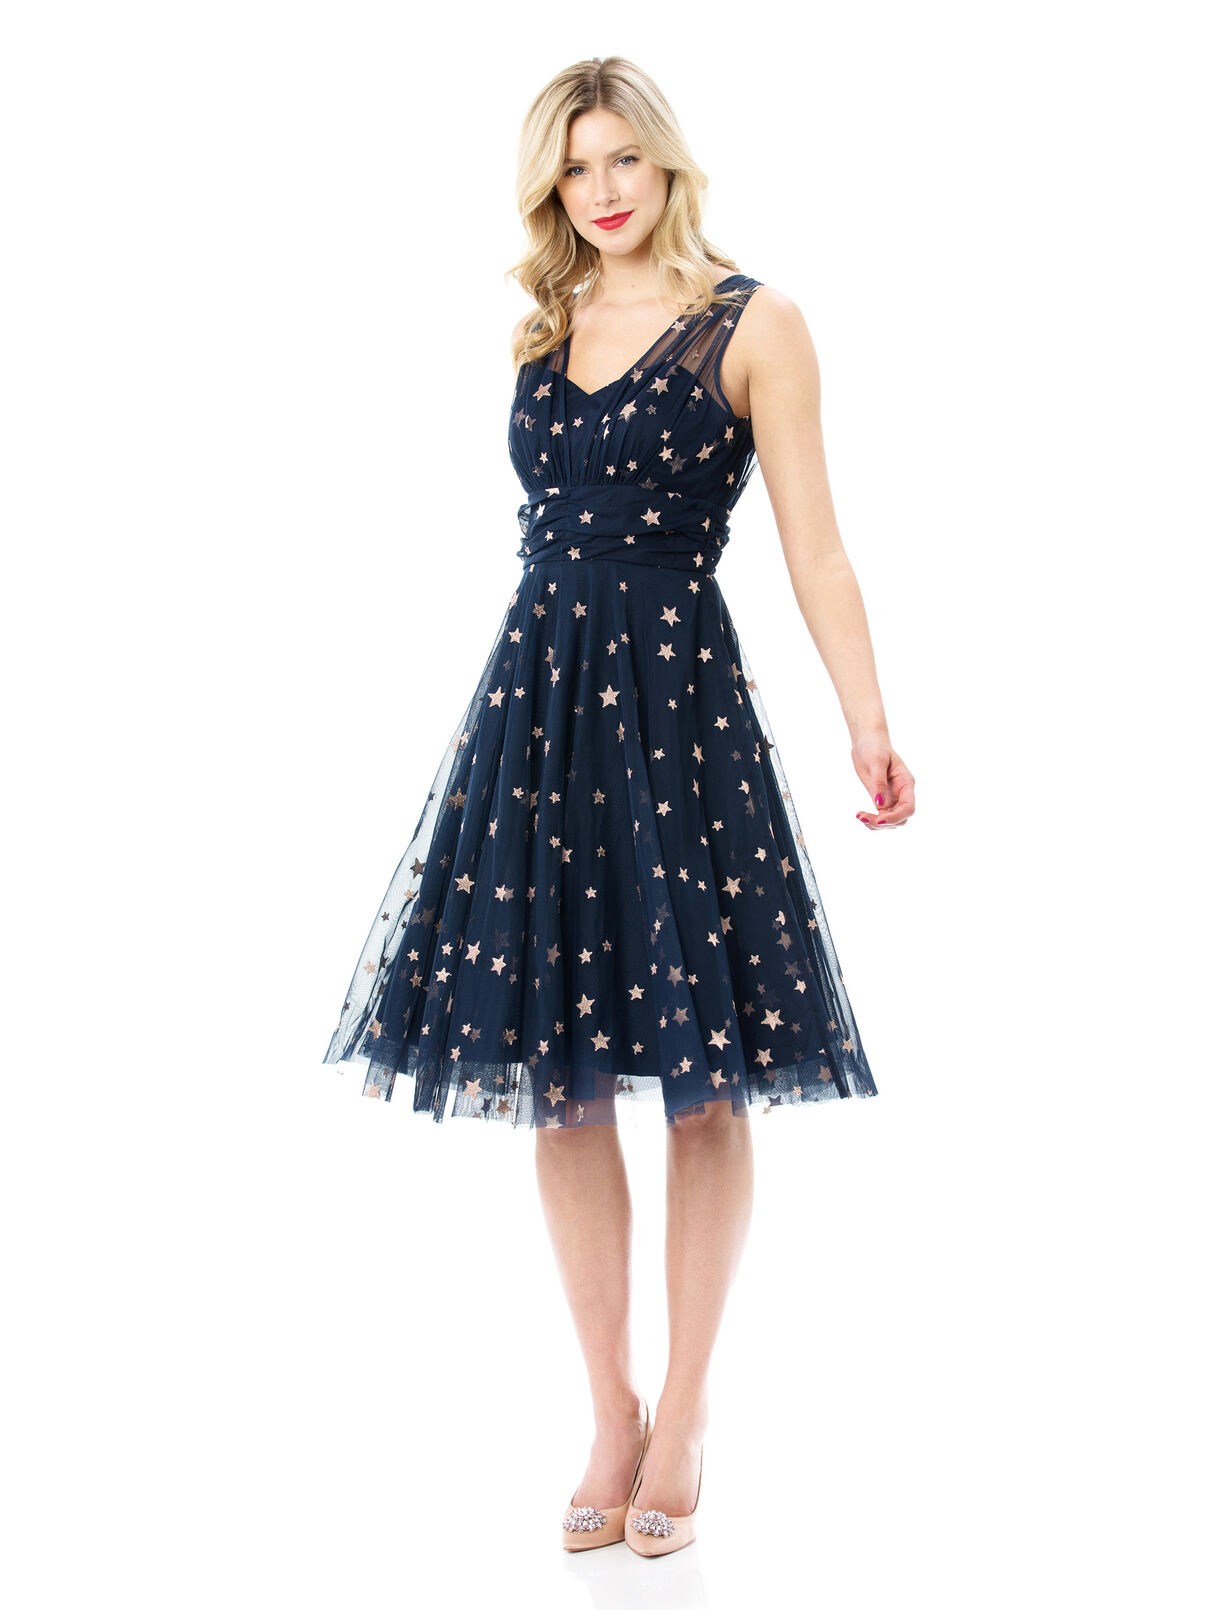 Wish Upon A Star Dress Shop Dresses Online From Review